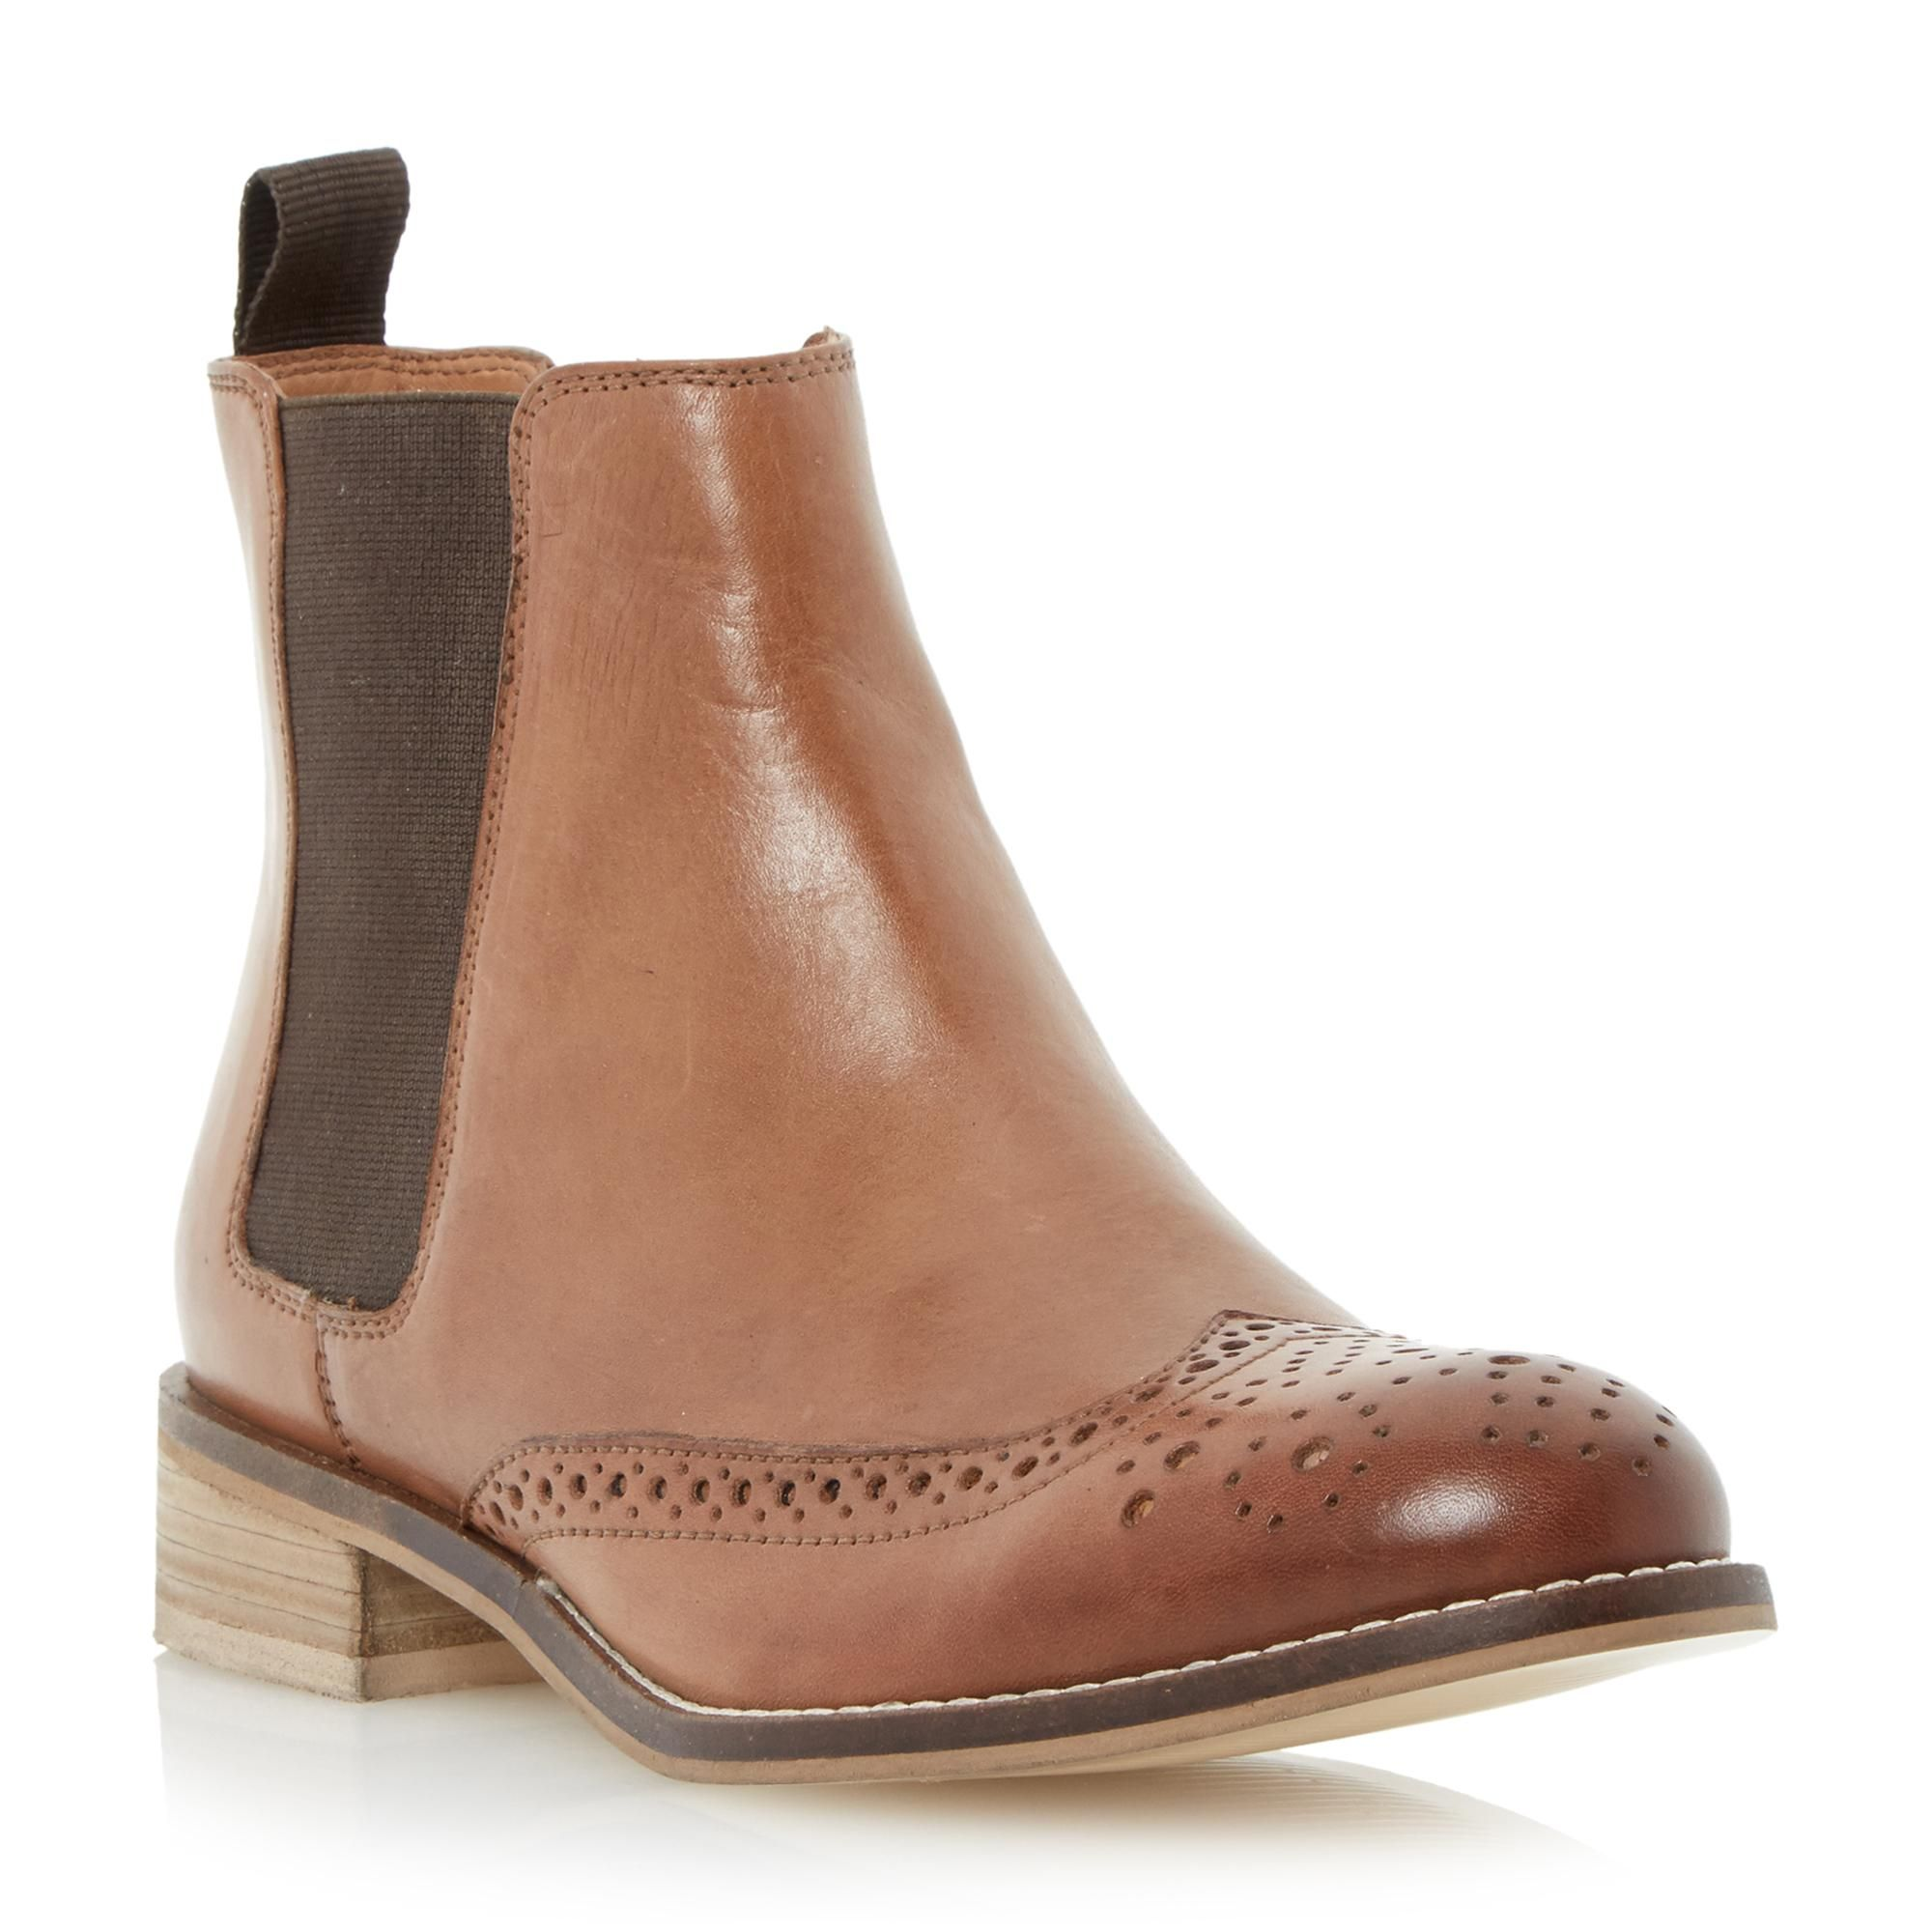 24ef9a8dac18 DUNE LADIES QUENTIN - Leather Brogue Chelsea Boot - tan | Dune Shoes Online